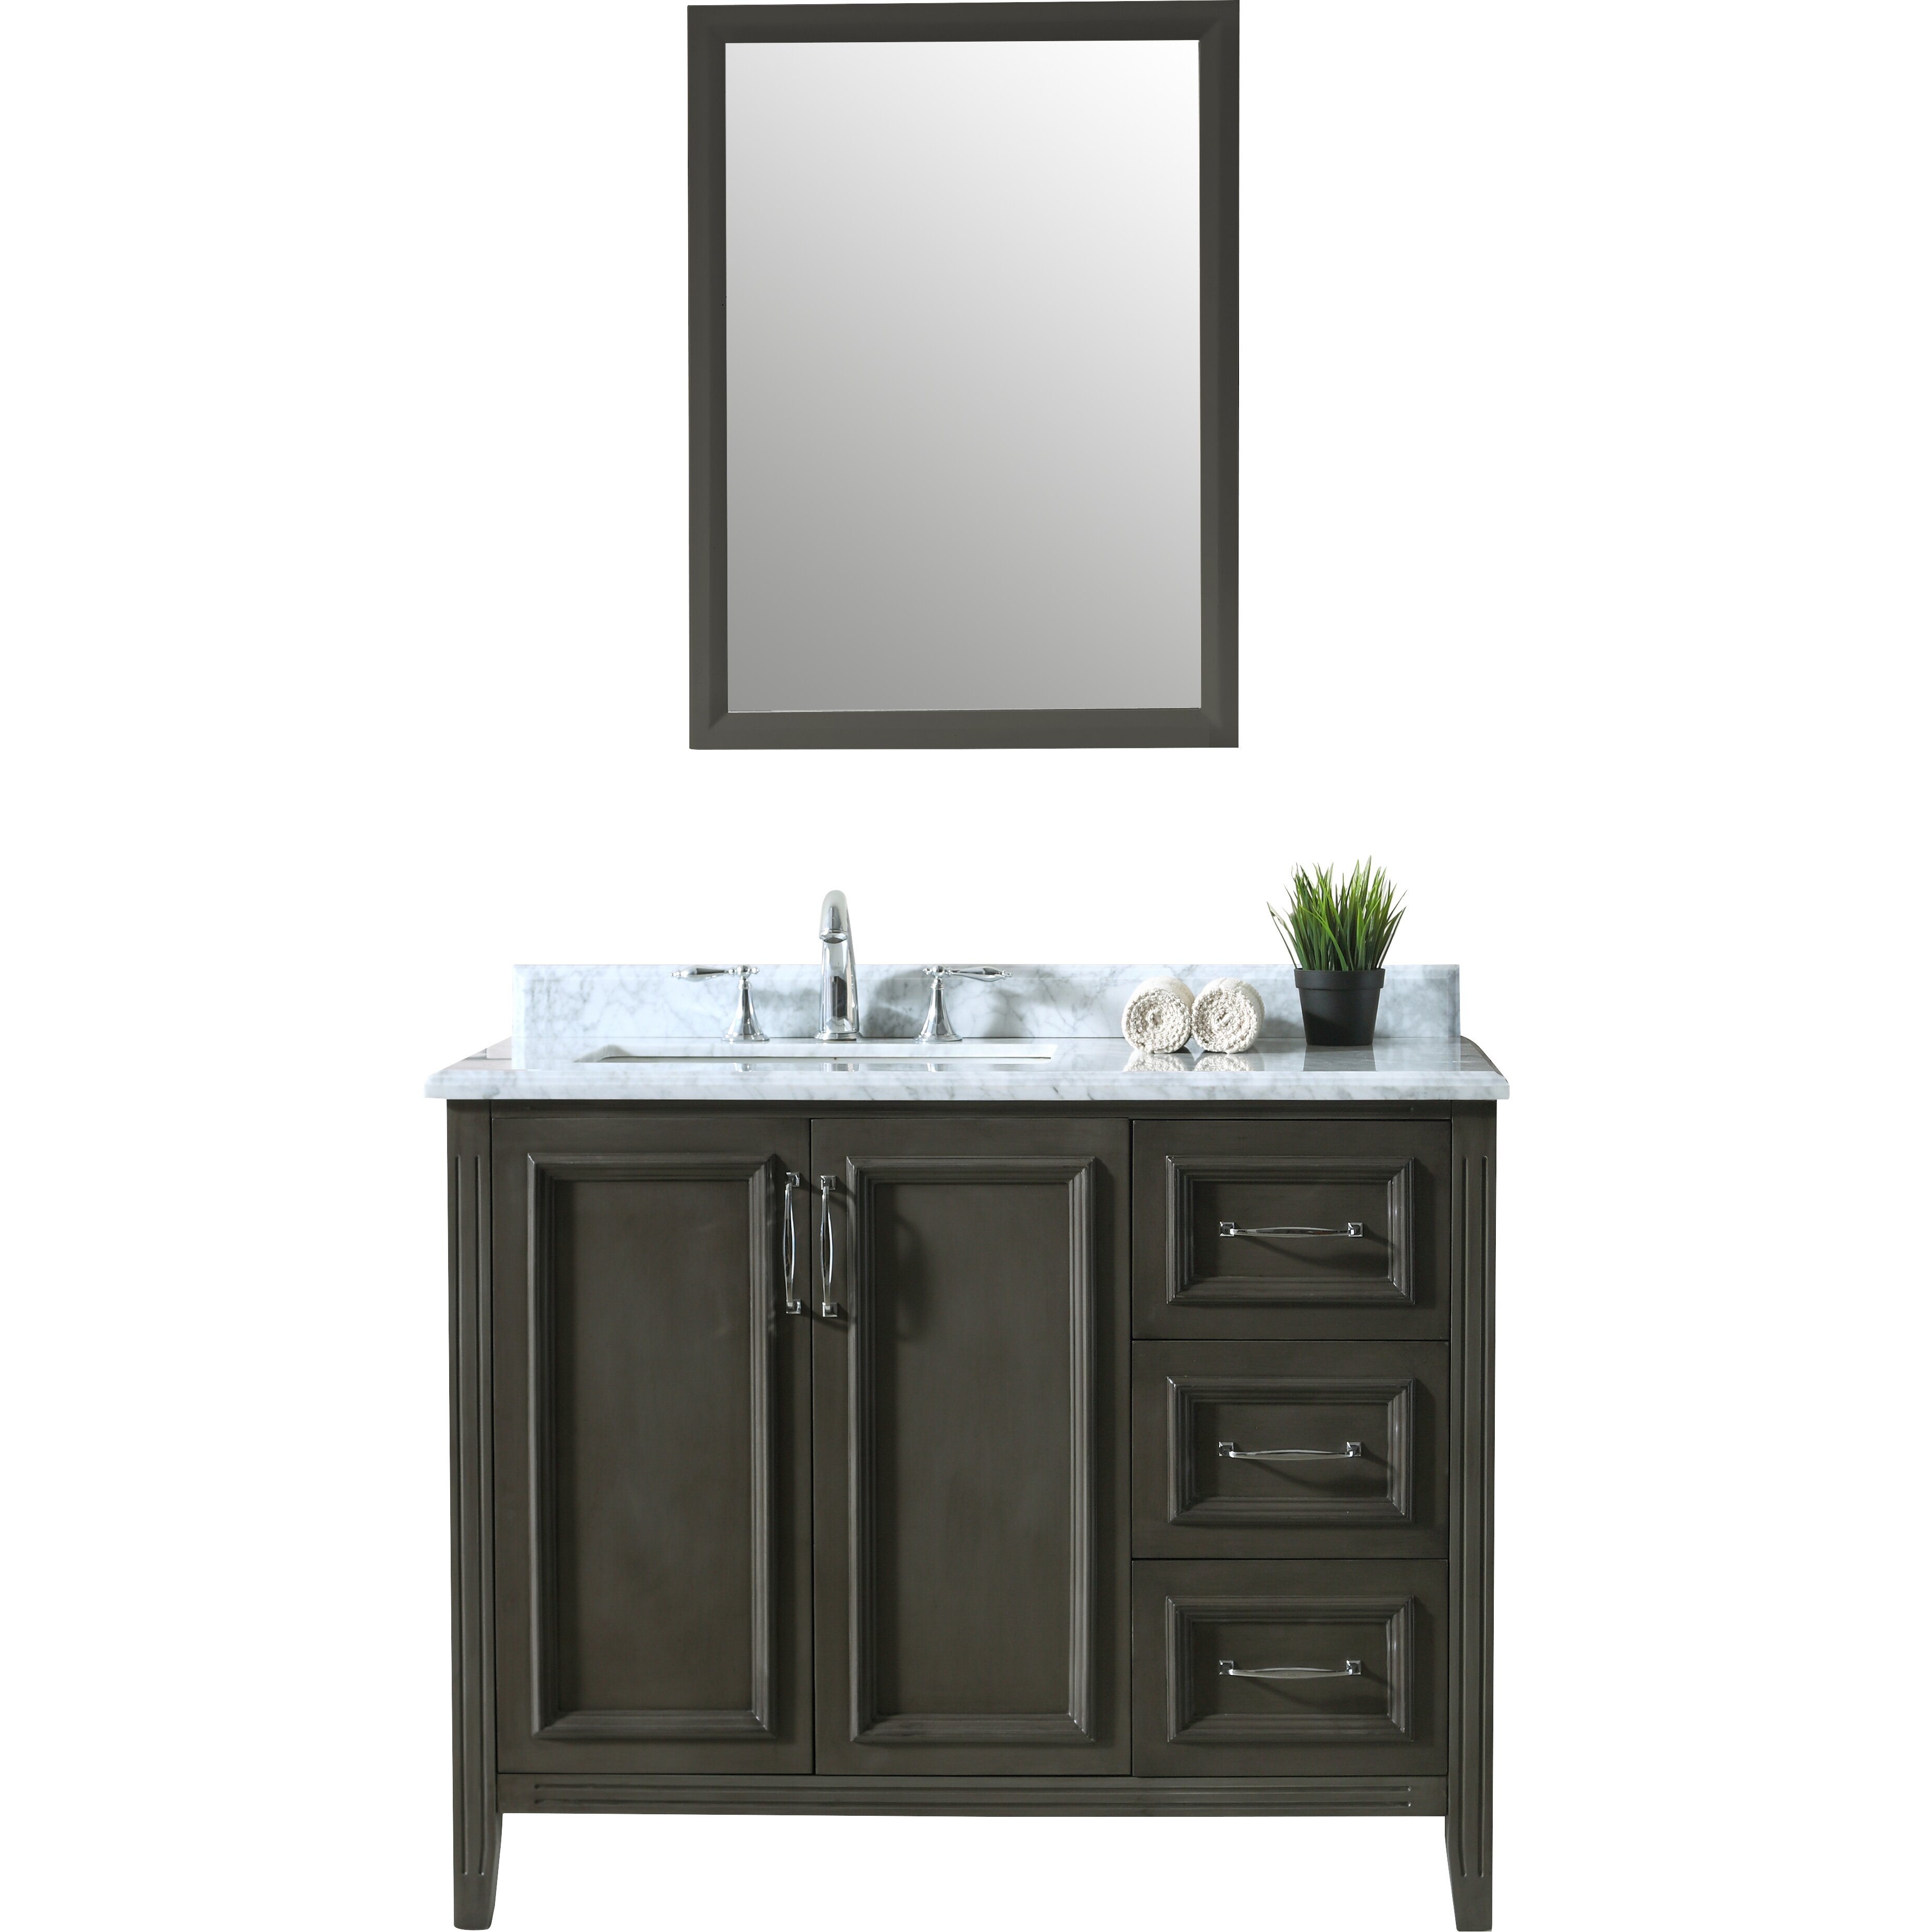 "Ari Kitchen & Bath Jude 42"" Single Bathroom Vanity Set & Reviews"